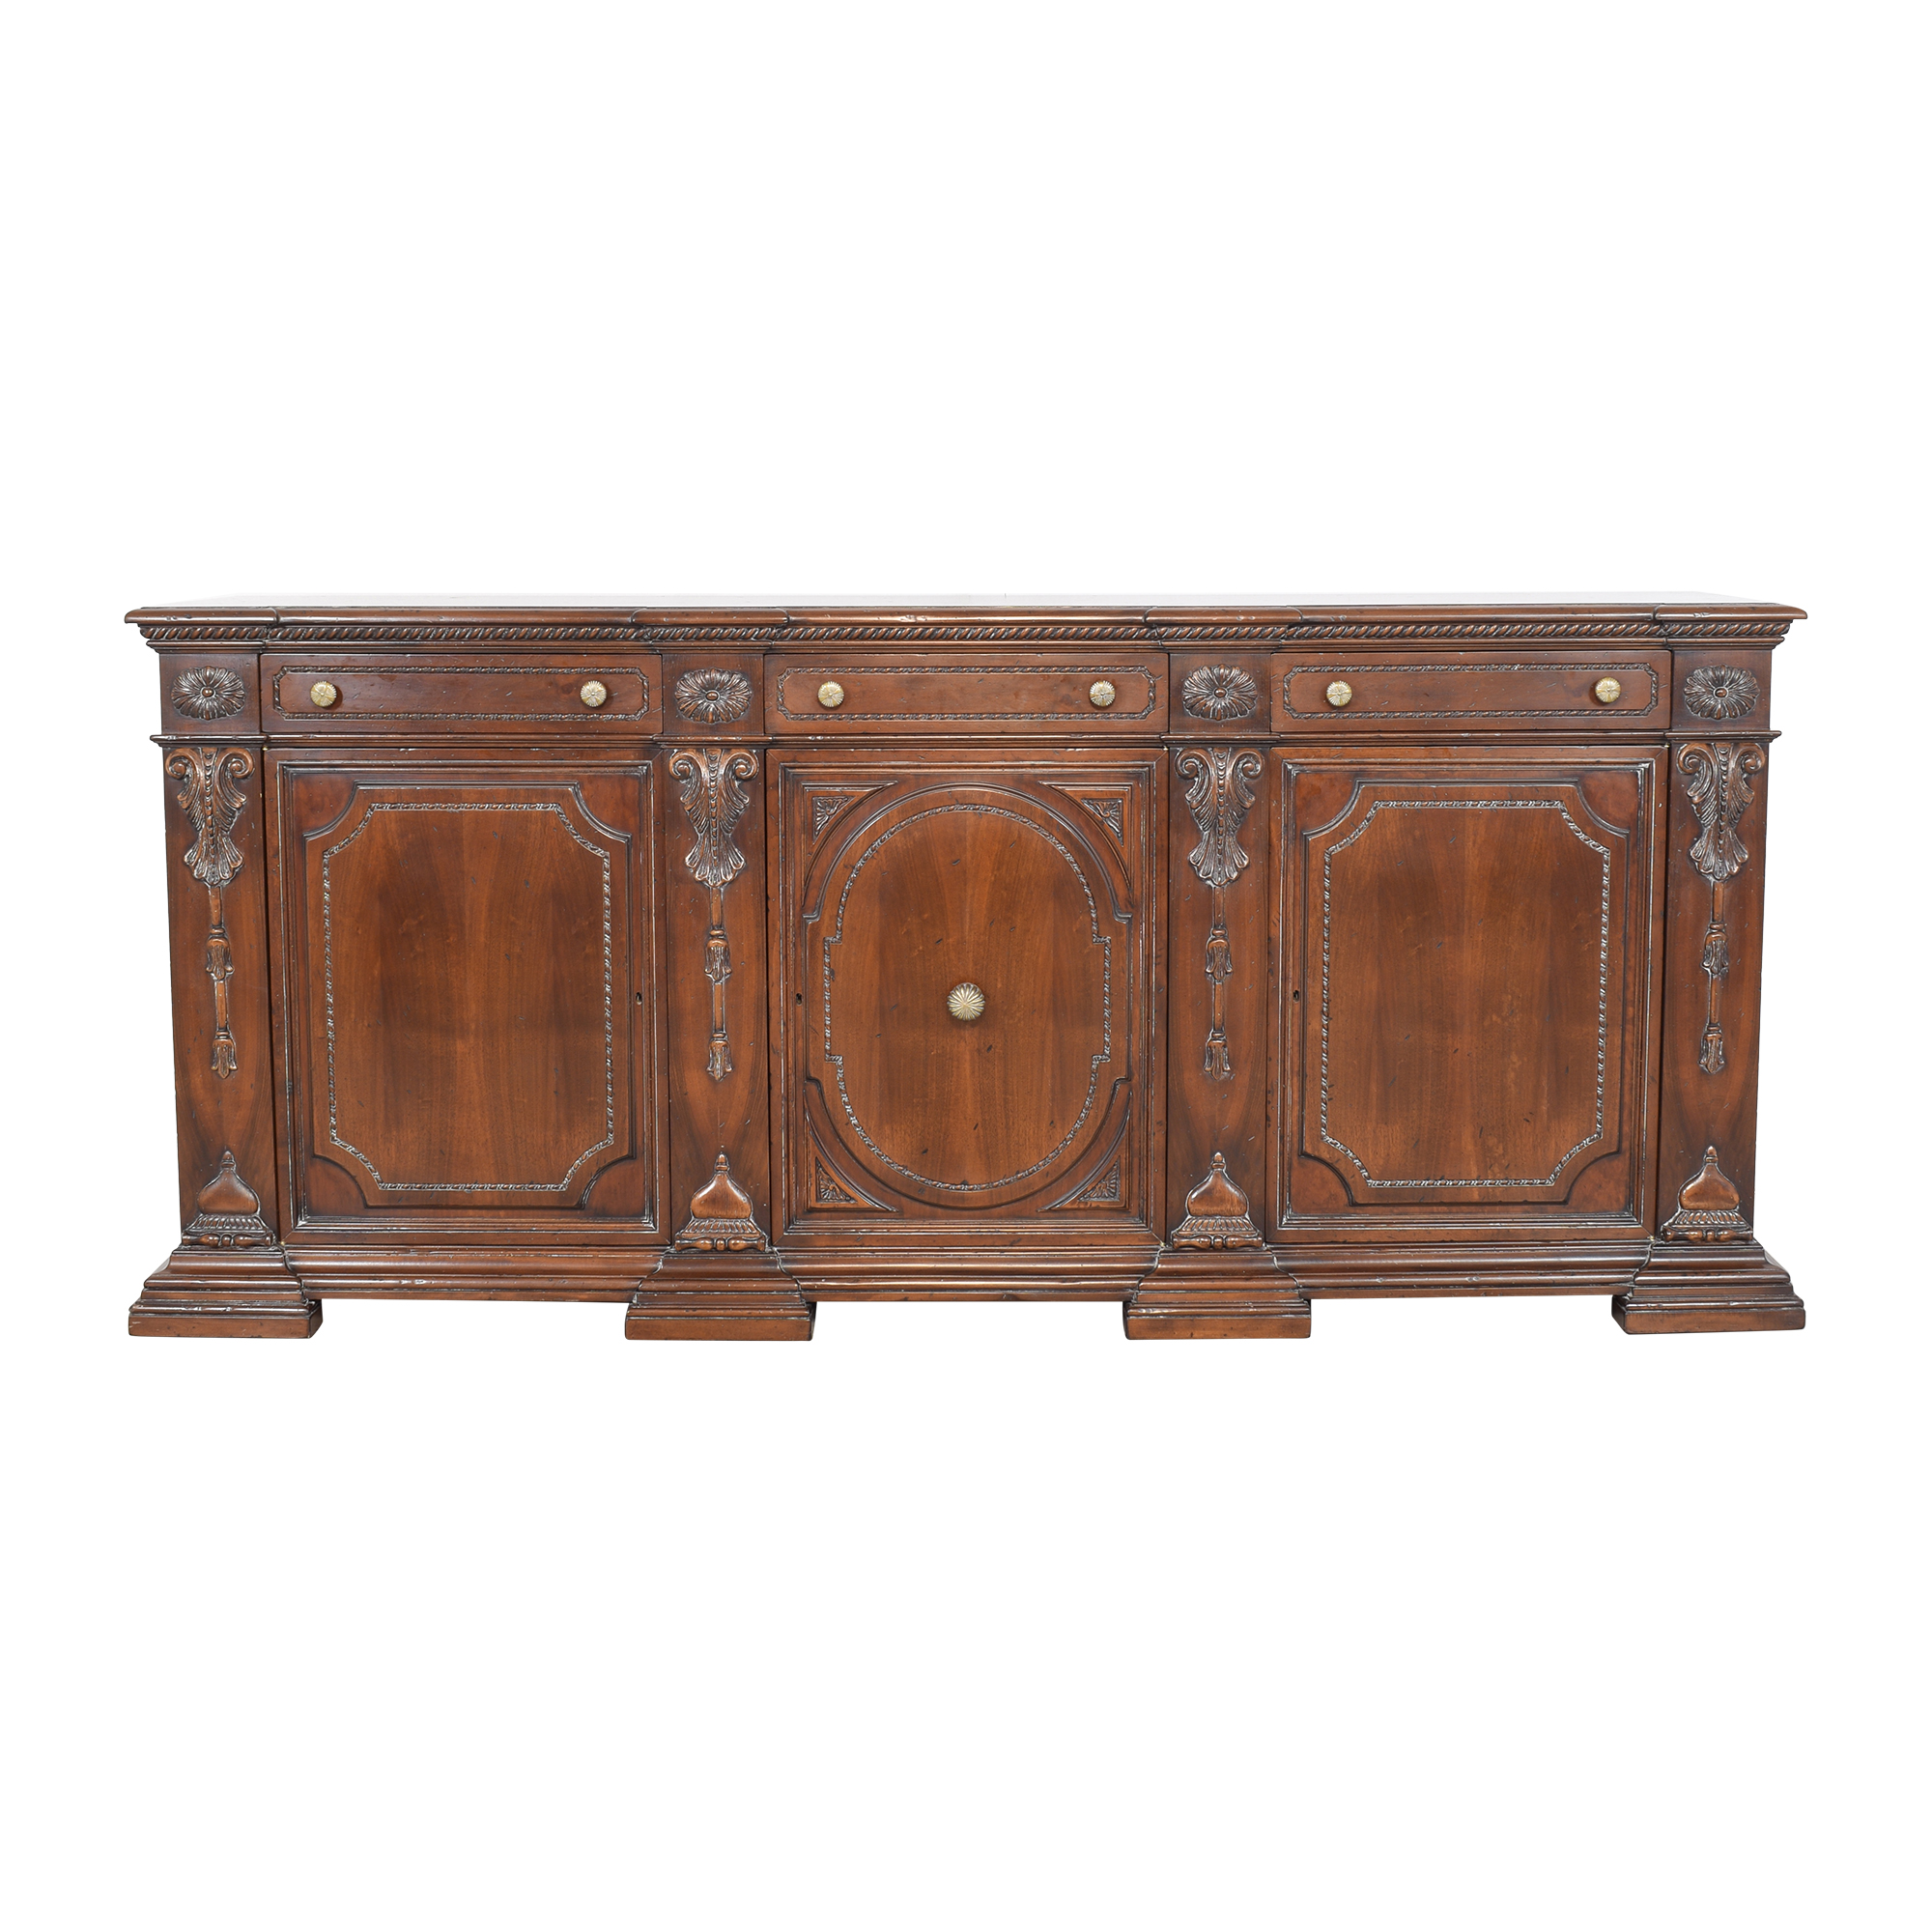 Francesco Molon Francesco Molon XVI Century Carved Sideboard nj